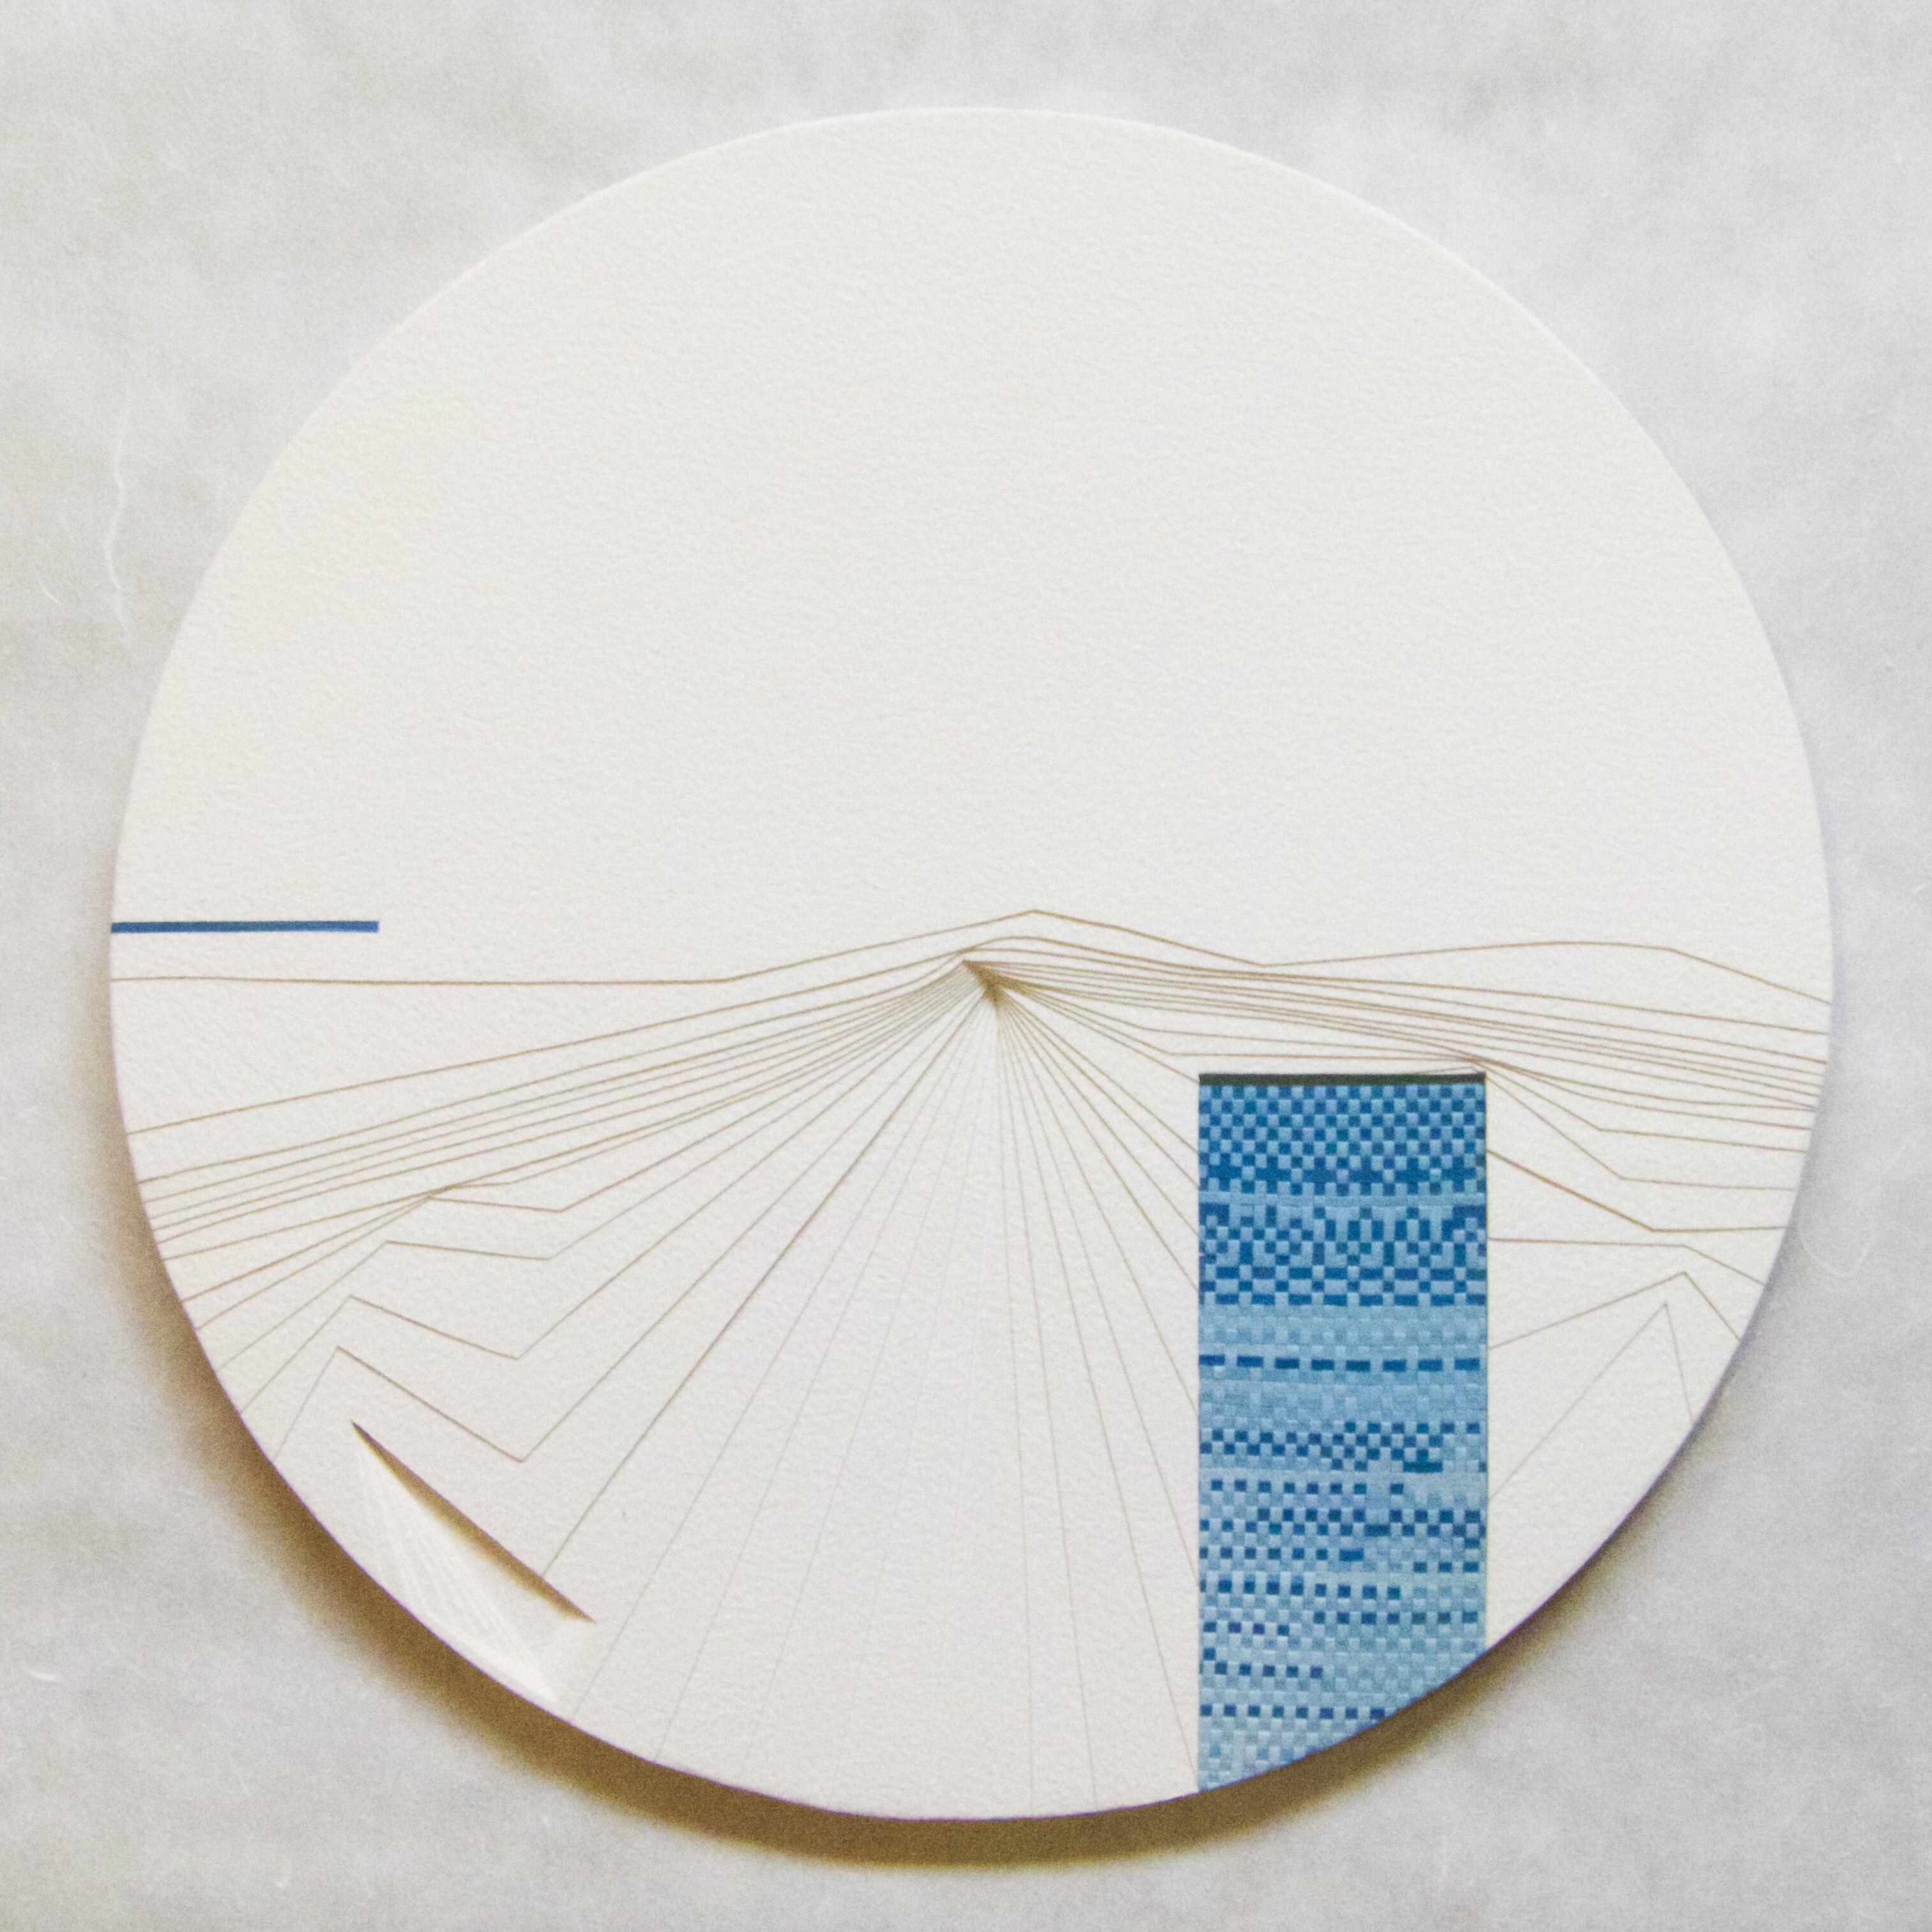 Cheng_Jacky_Water_1.3.2020_Bas Relief Paper sculpture_a